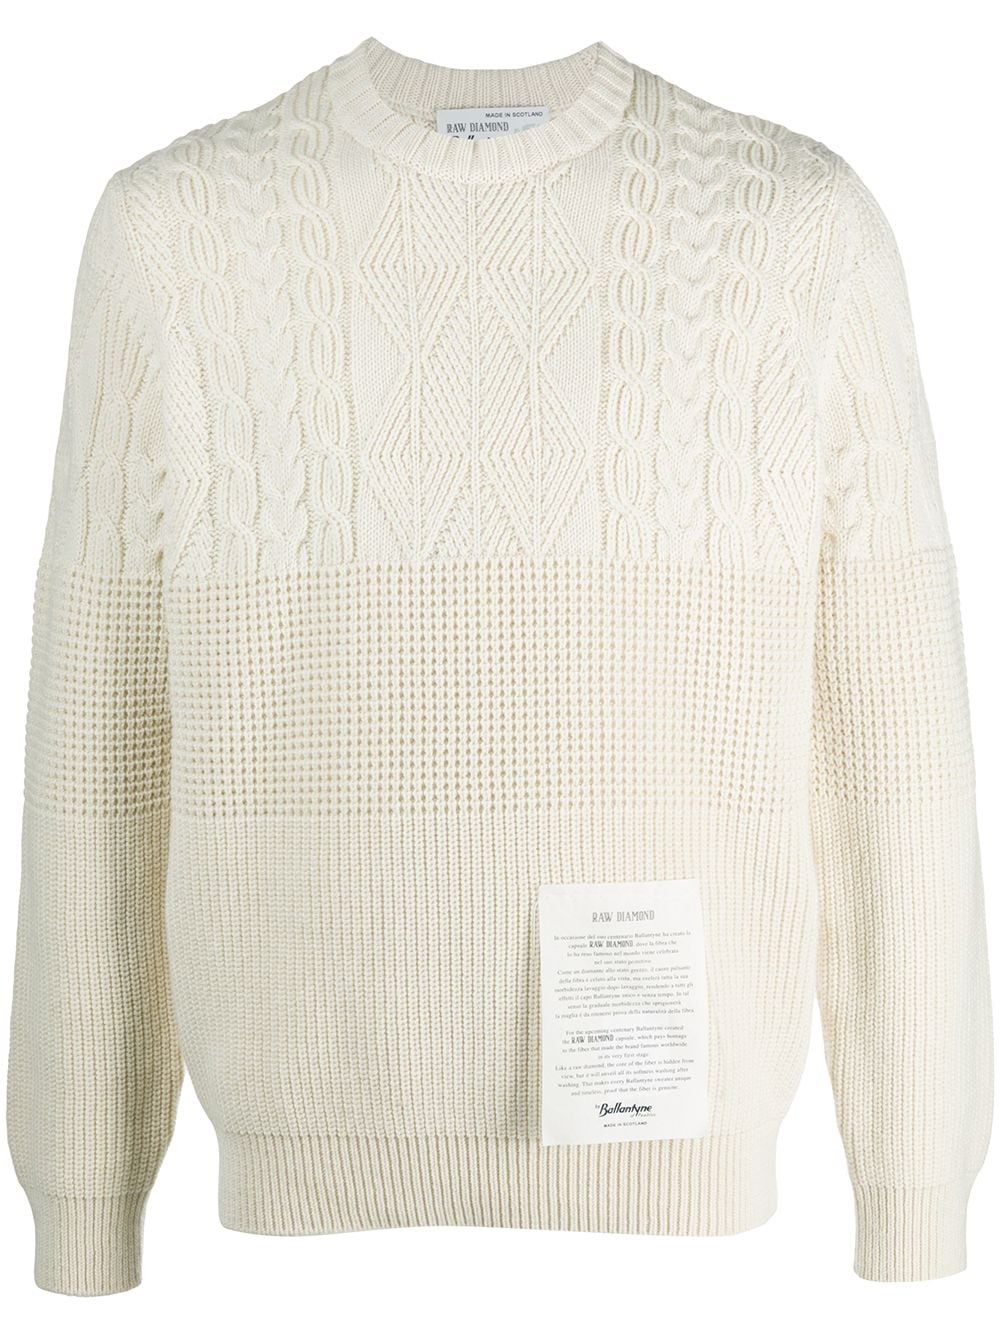 RAW DIAMOND BY BALLANTYNE Logo Patch Cashmere Knit Jumper